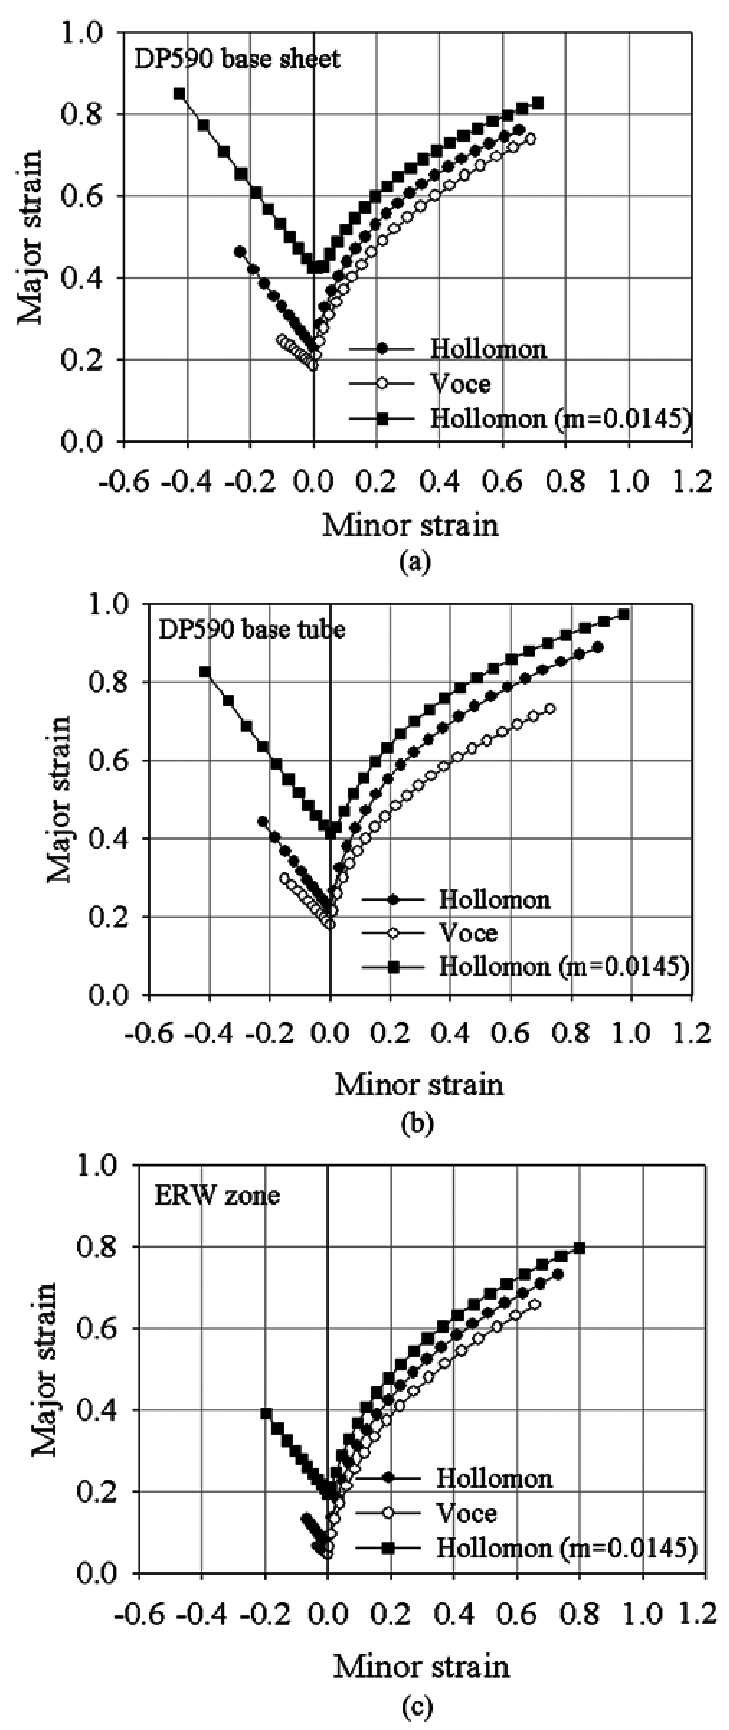 hight resolution of calculated forming limit diagrams a dp590 base sheet b dp590 base